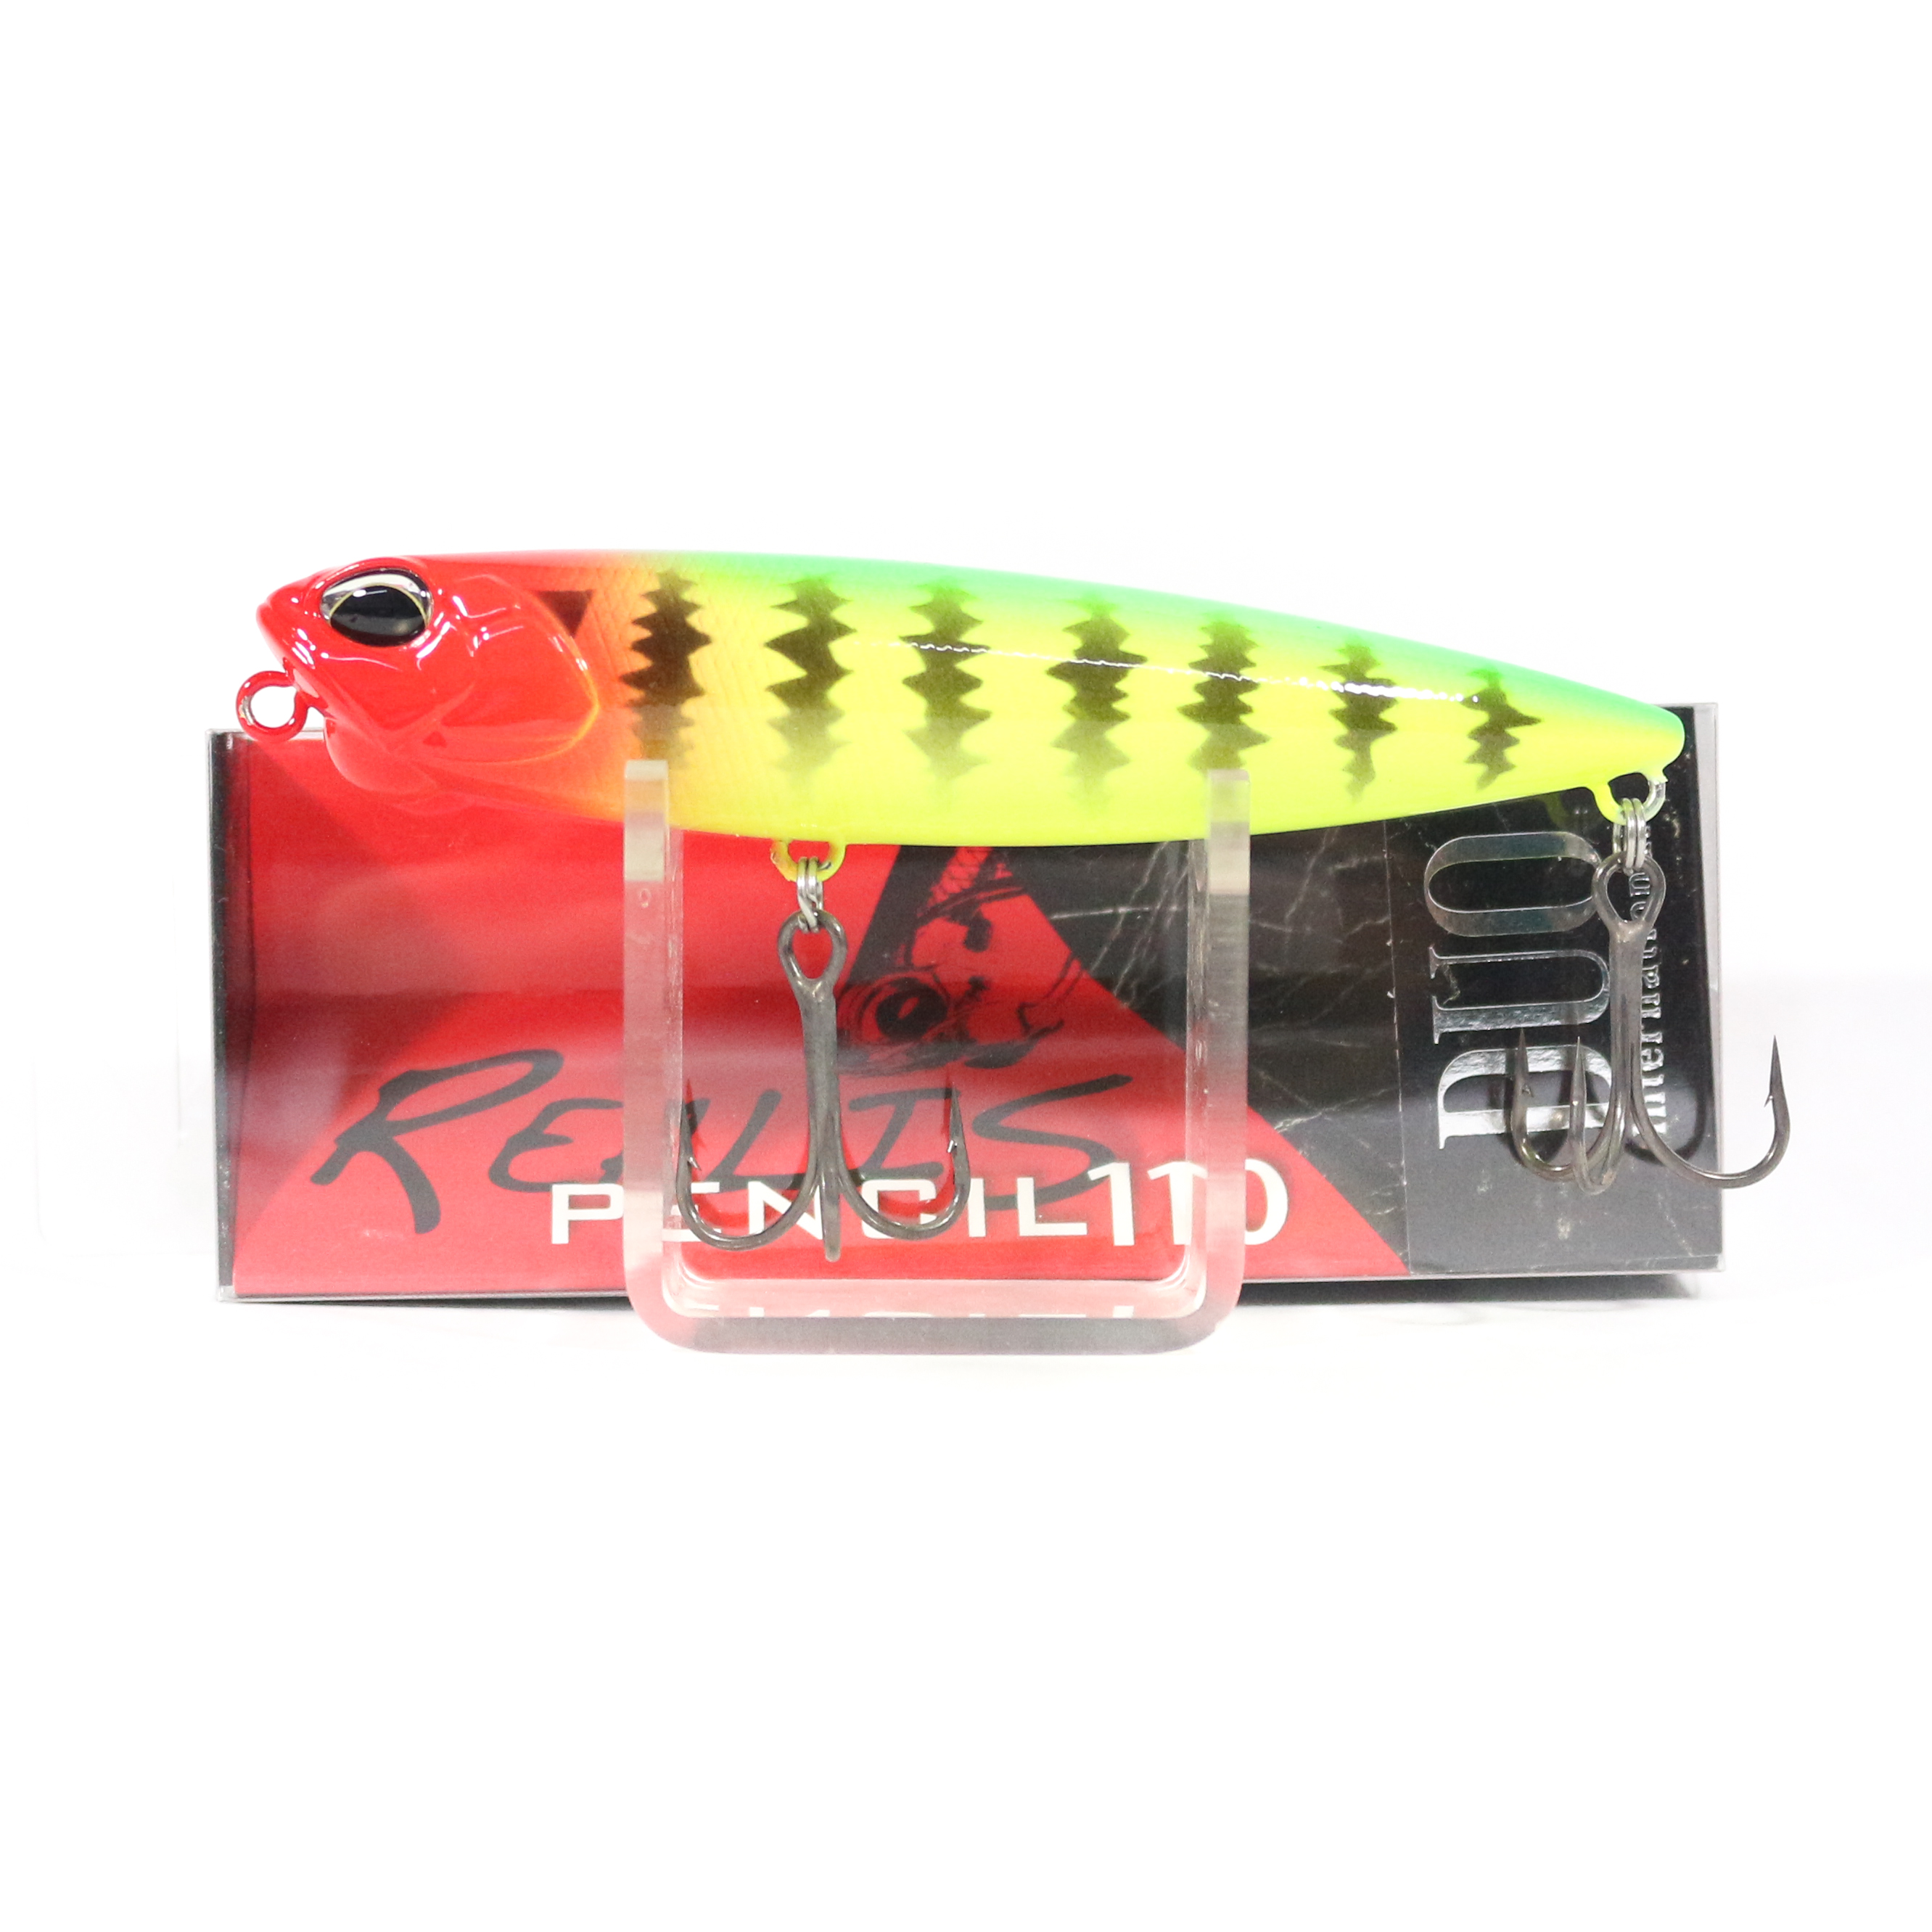 Duo Realis Pencil 110 Topwater Floating Lure ACC0284 (9608)